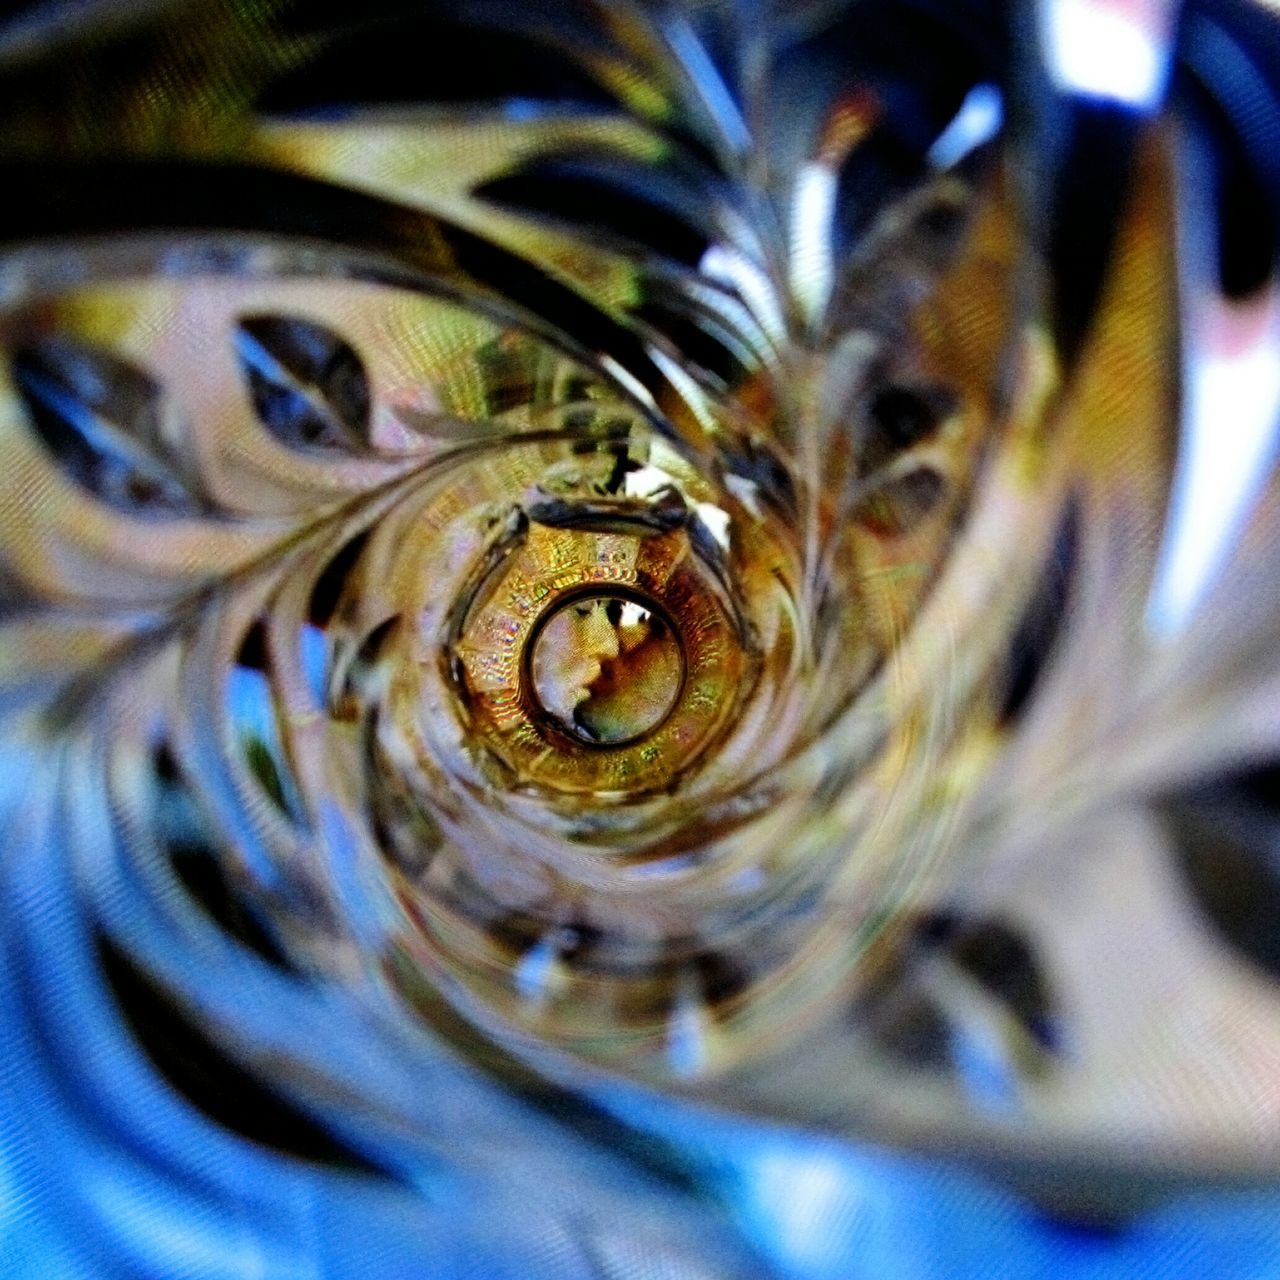 The Kiss Muster Mix Photos That Will Restore Your Faith In Humanity Look Inside You & You A Frame Within A Frame Centerpoint Adventures Beyond The Ultraworld Untold Stories Abstract Seeing The Sights NEM Abstracts Macro Beauty Was Will Ich Denken Fine Art Flyfish Album Human Meets Technology Fantasy Dreaming Look Inside This... Inside Out Lines, Colors & Textures Two Is Better Than One Maximum Closeness EyeEm Best Shots Film Close Up Technology